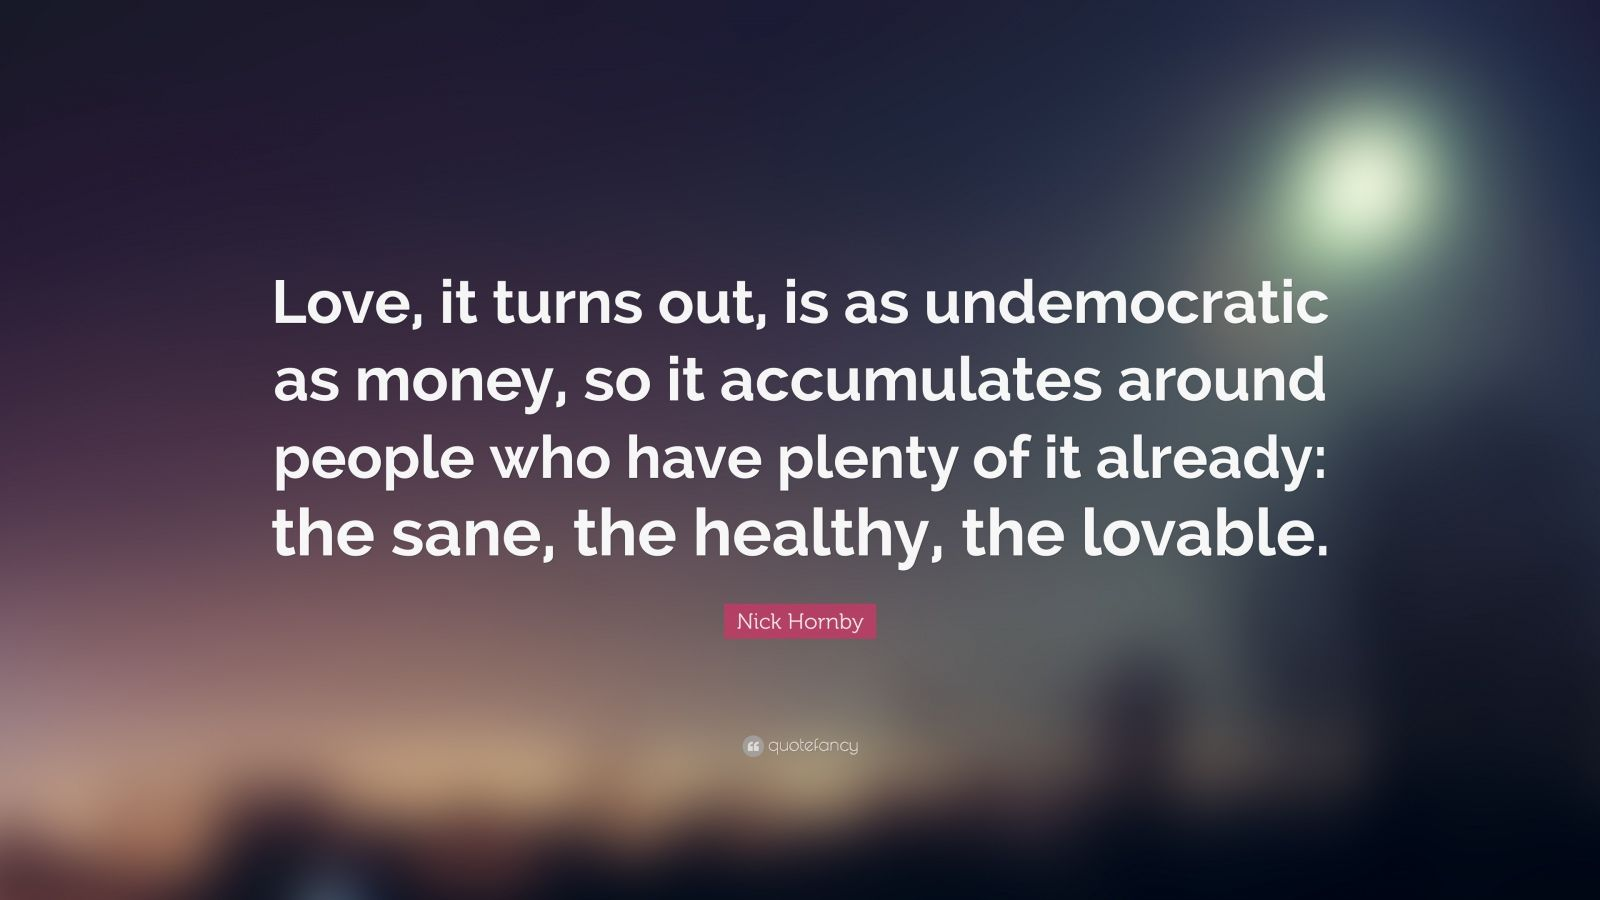 "Nick Hornby Quote: ""Love, it turns out, is as undemocratic as money, so it accumulates around people who have plenty of it already: the sane, the healthy, the lovable."""